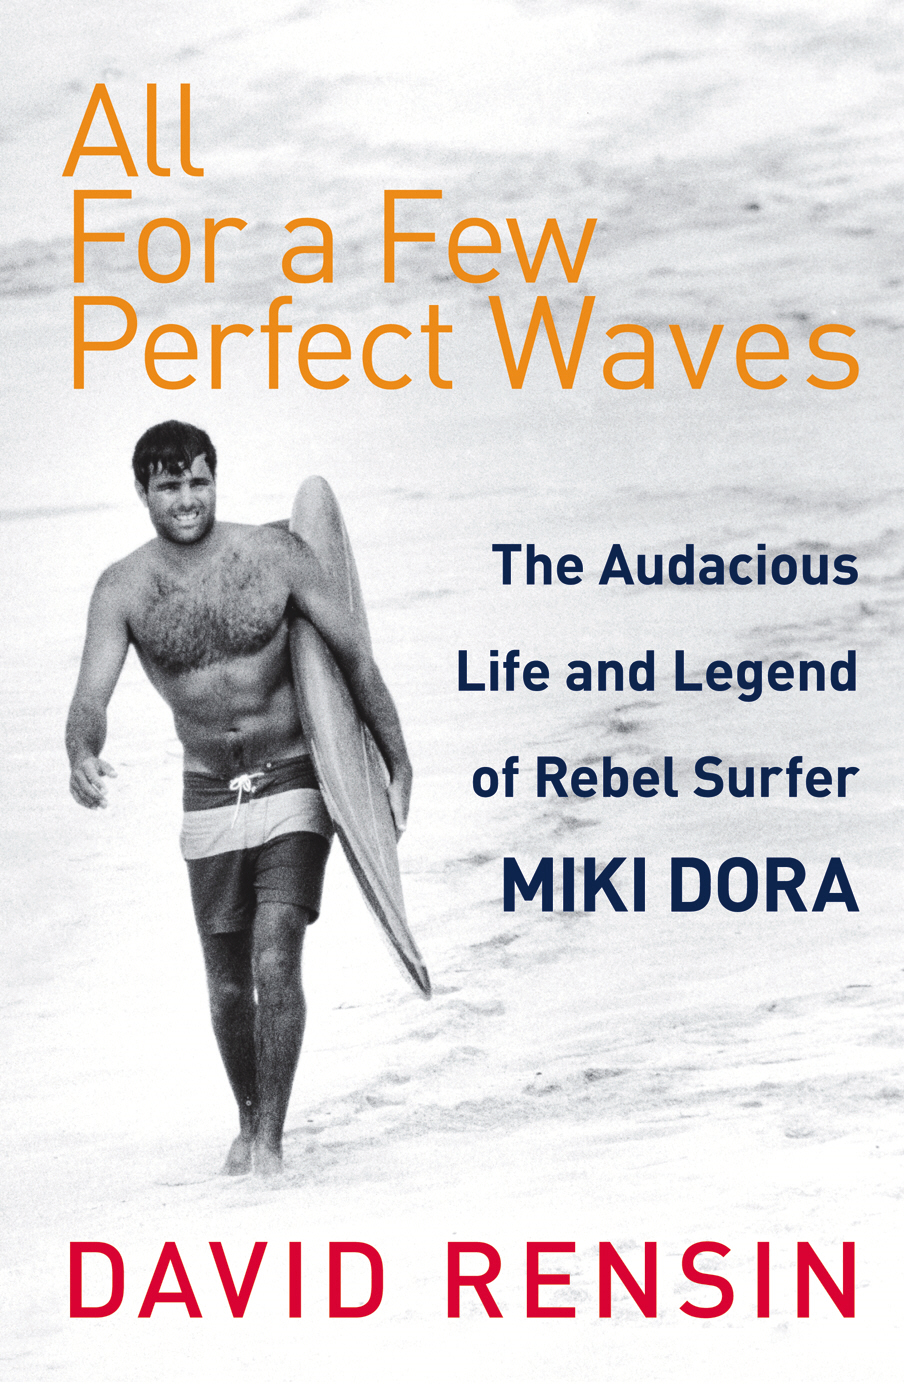 All For A Few Perfect Waves The Audacious Life and Legend of Rebel Surfer Miki Dora